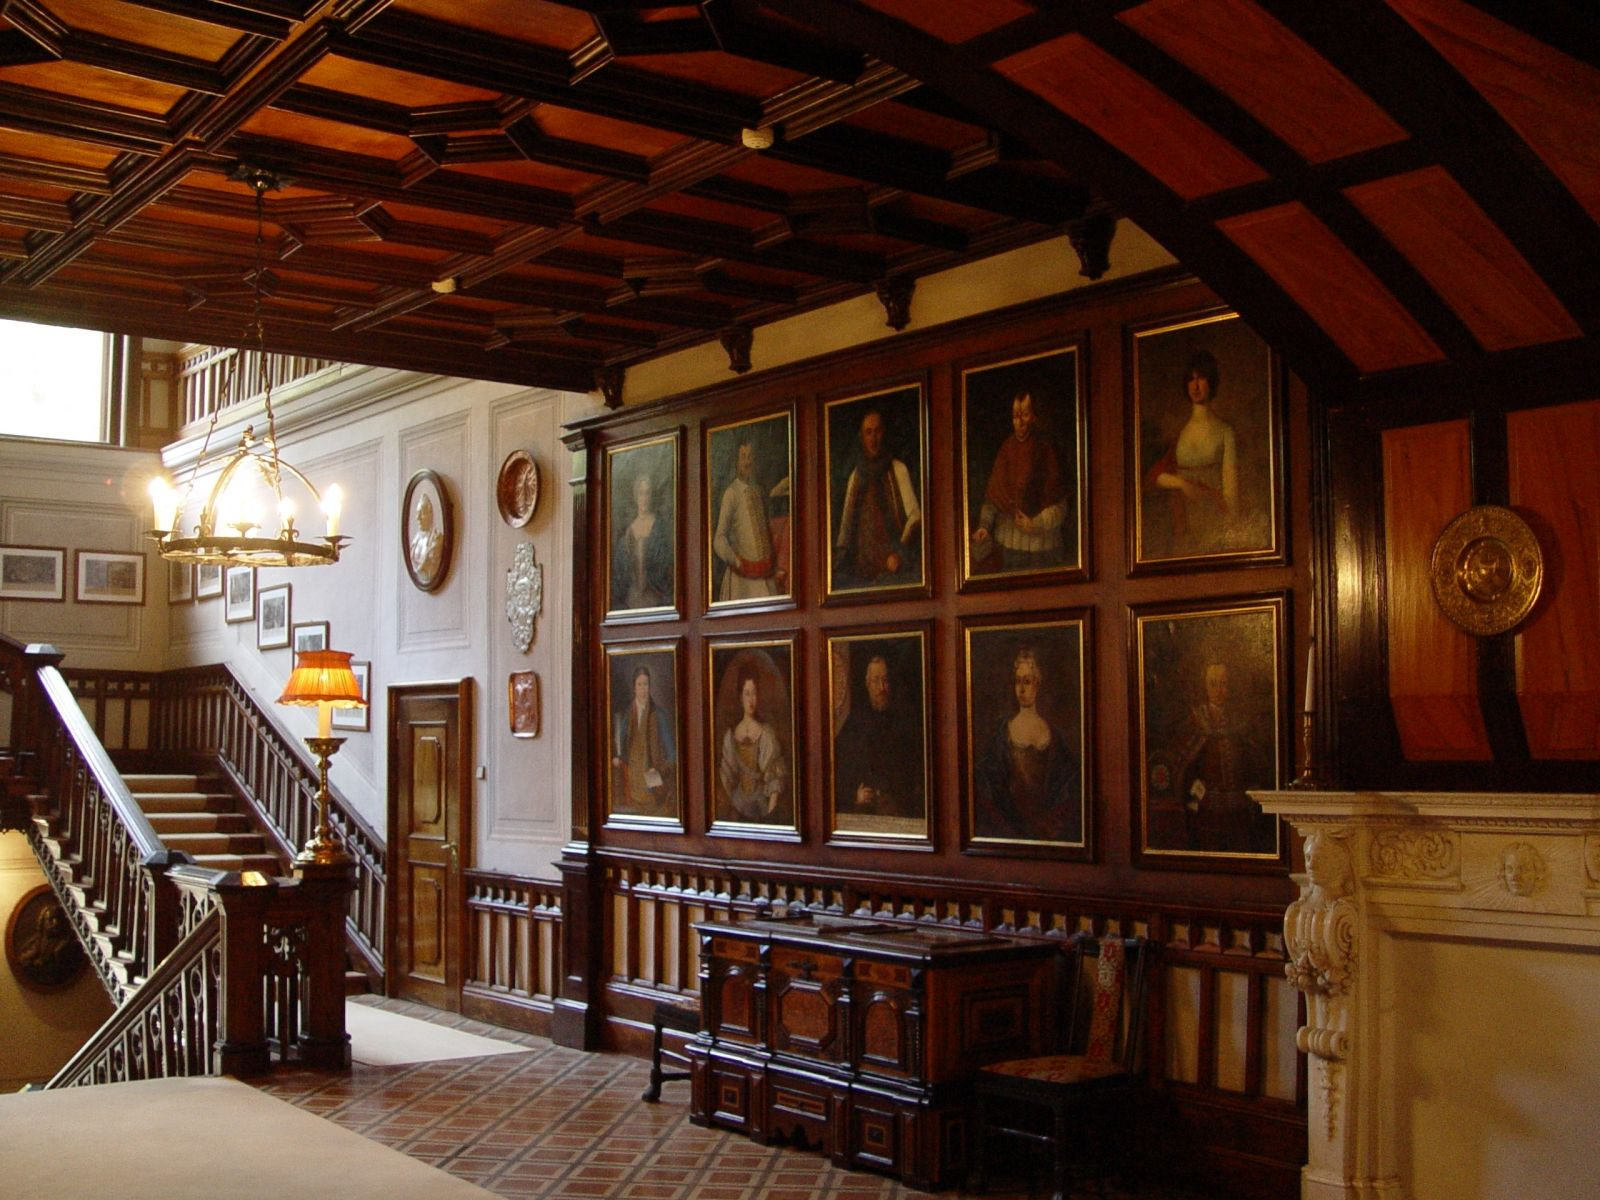 English Country Manor House Interiors